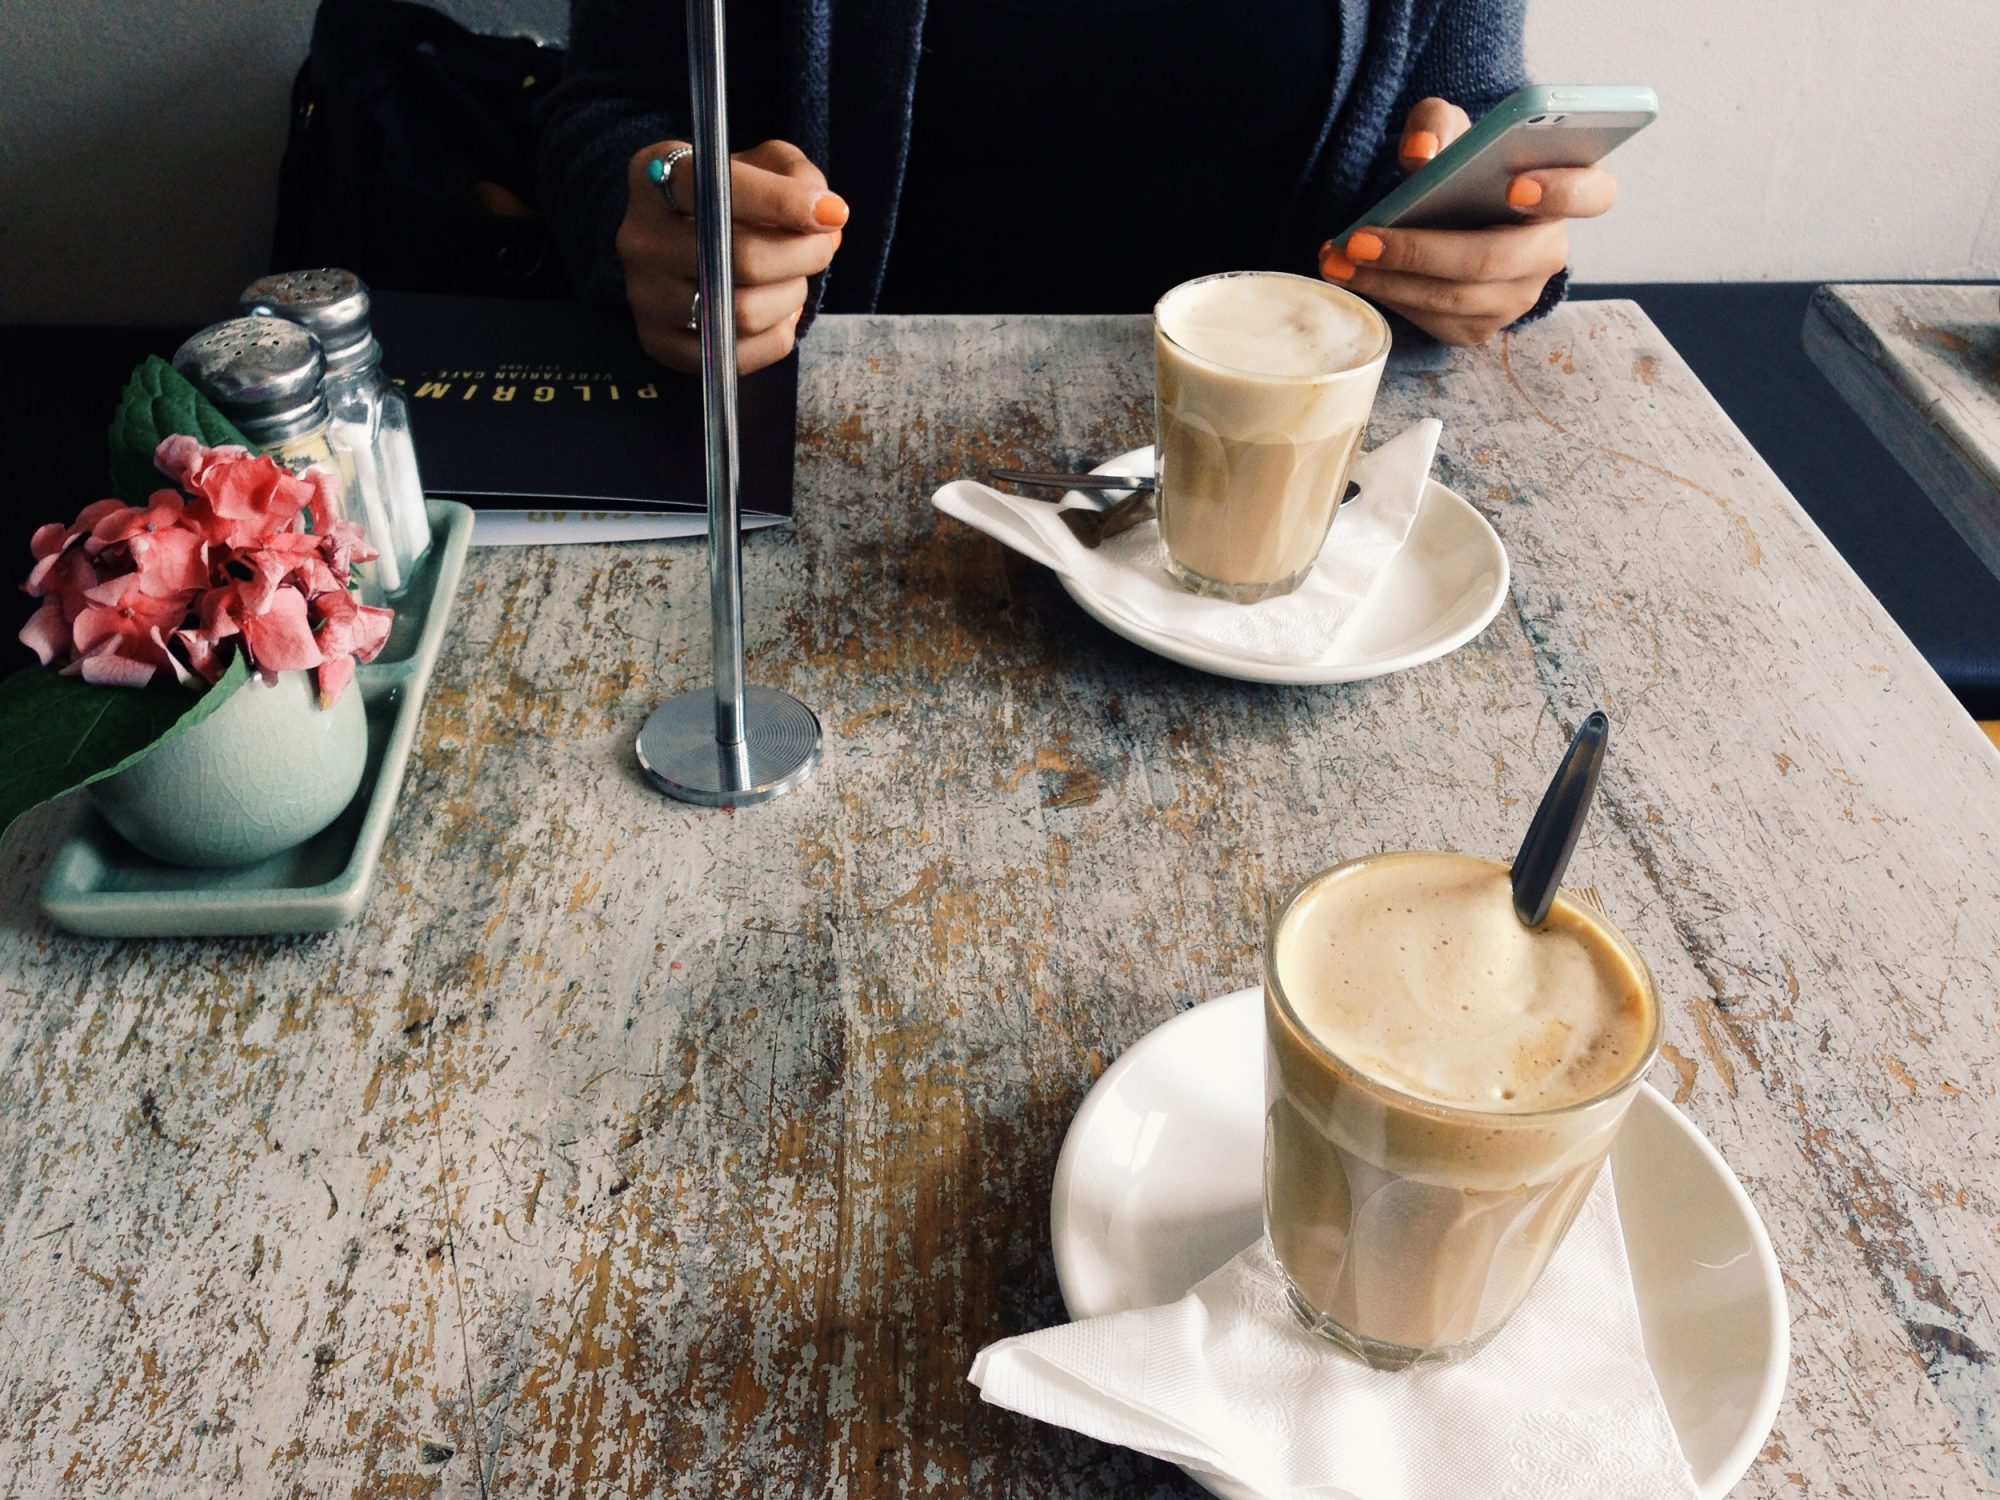 EC: Millennials Spend More at Bars, Restaurants, and Cafes Than Other Generations